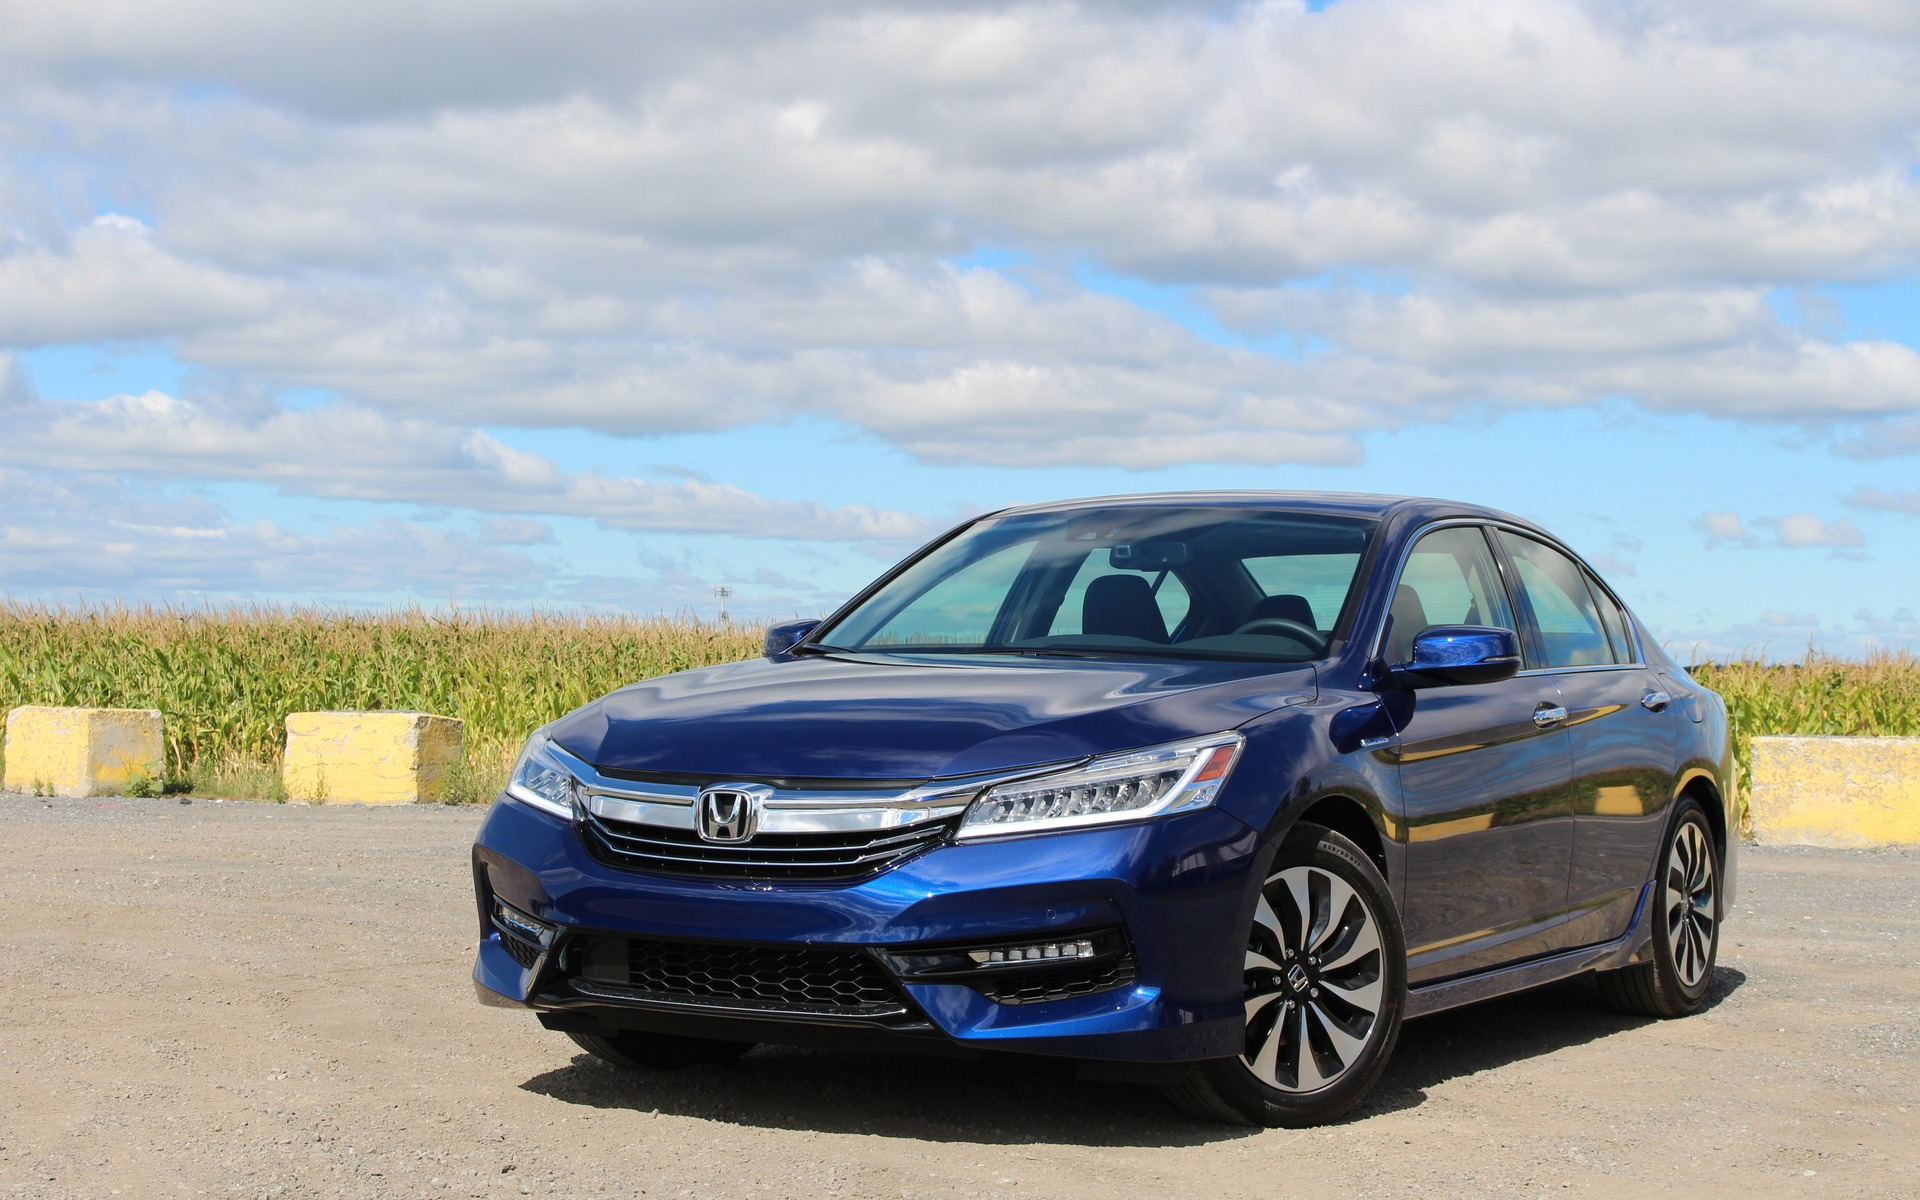 Honda Accord: When Can a Larger Child Sit in Front